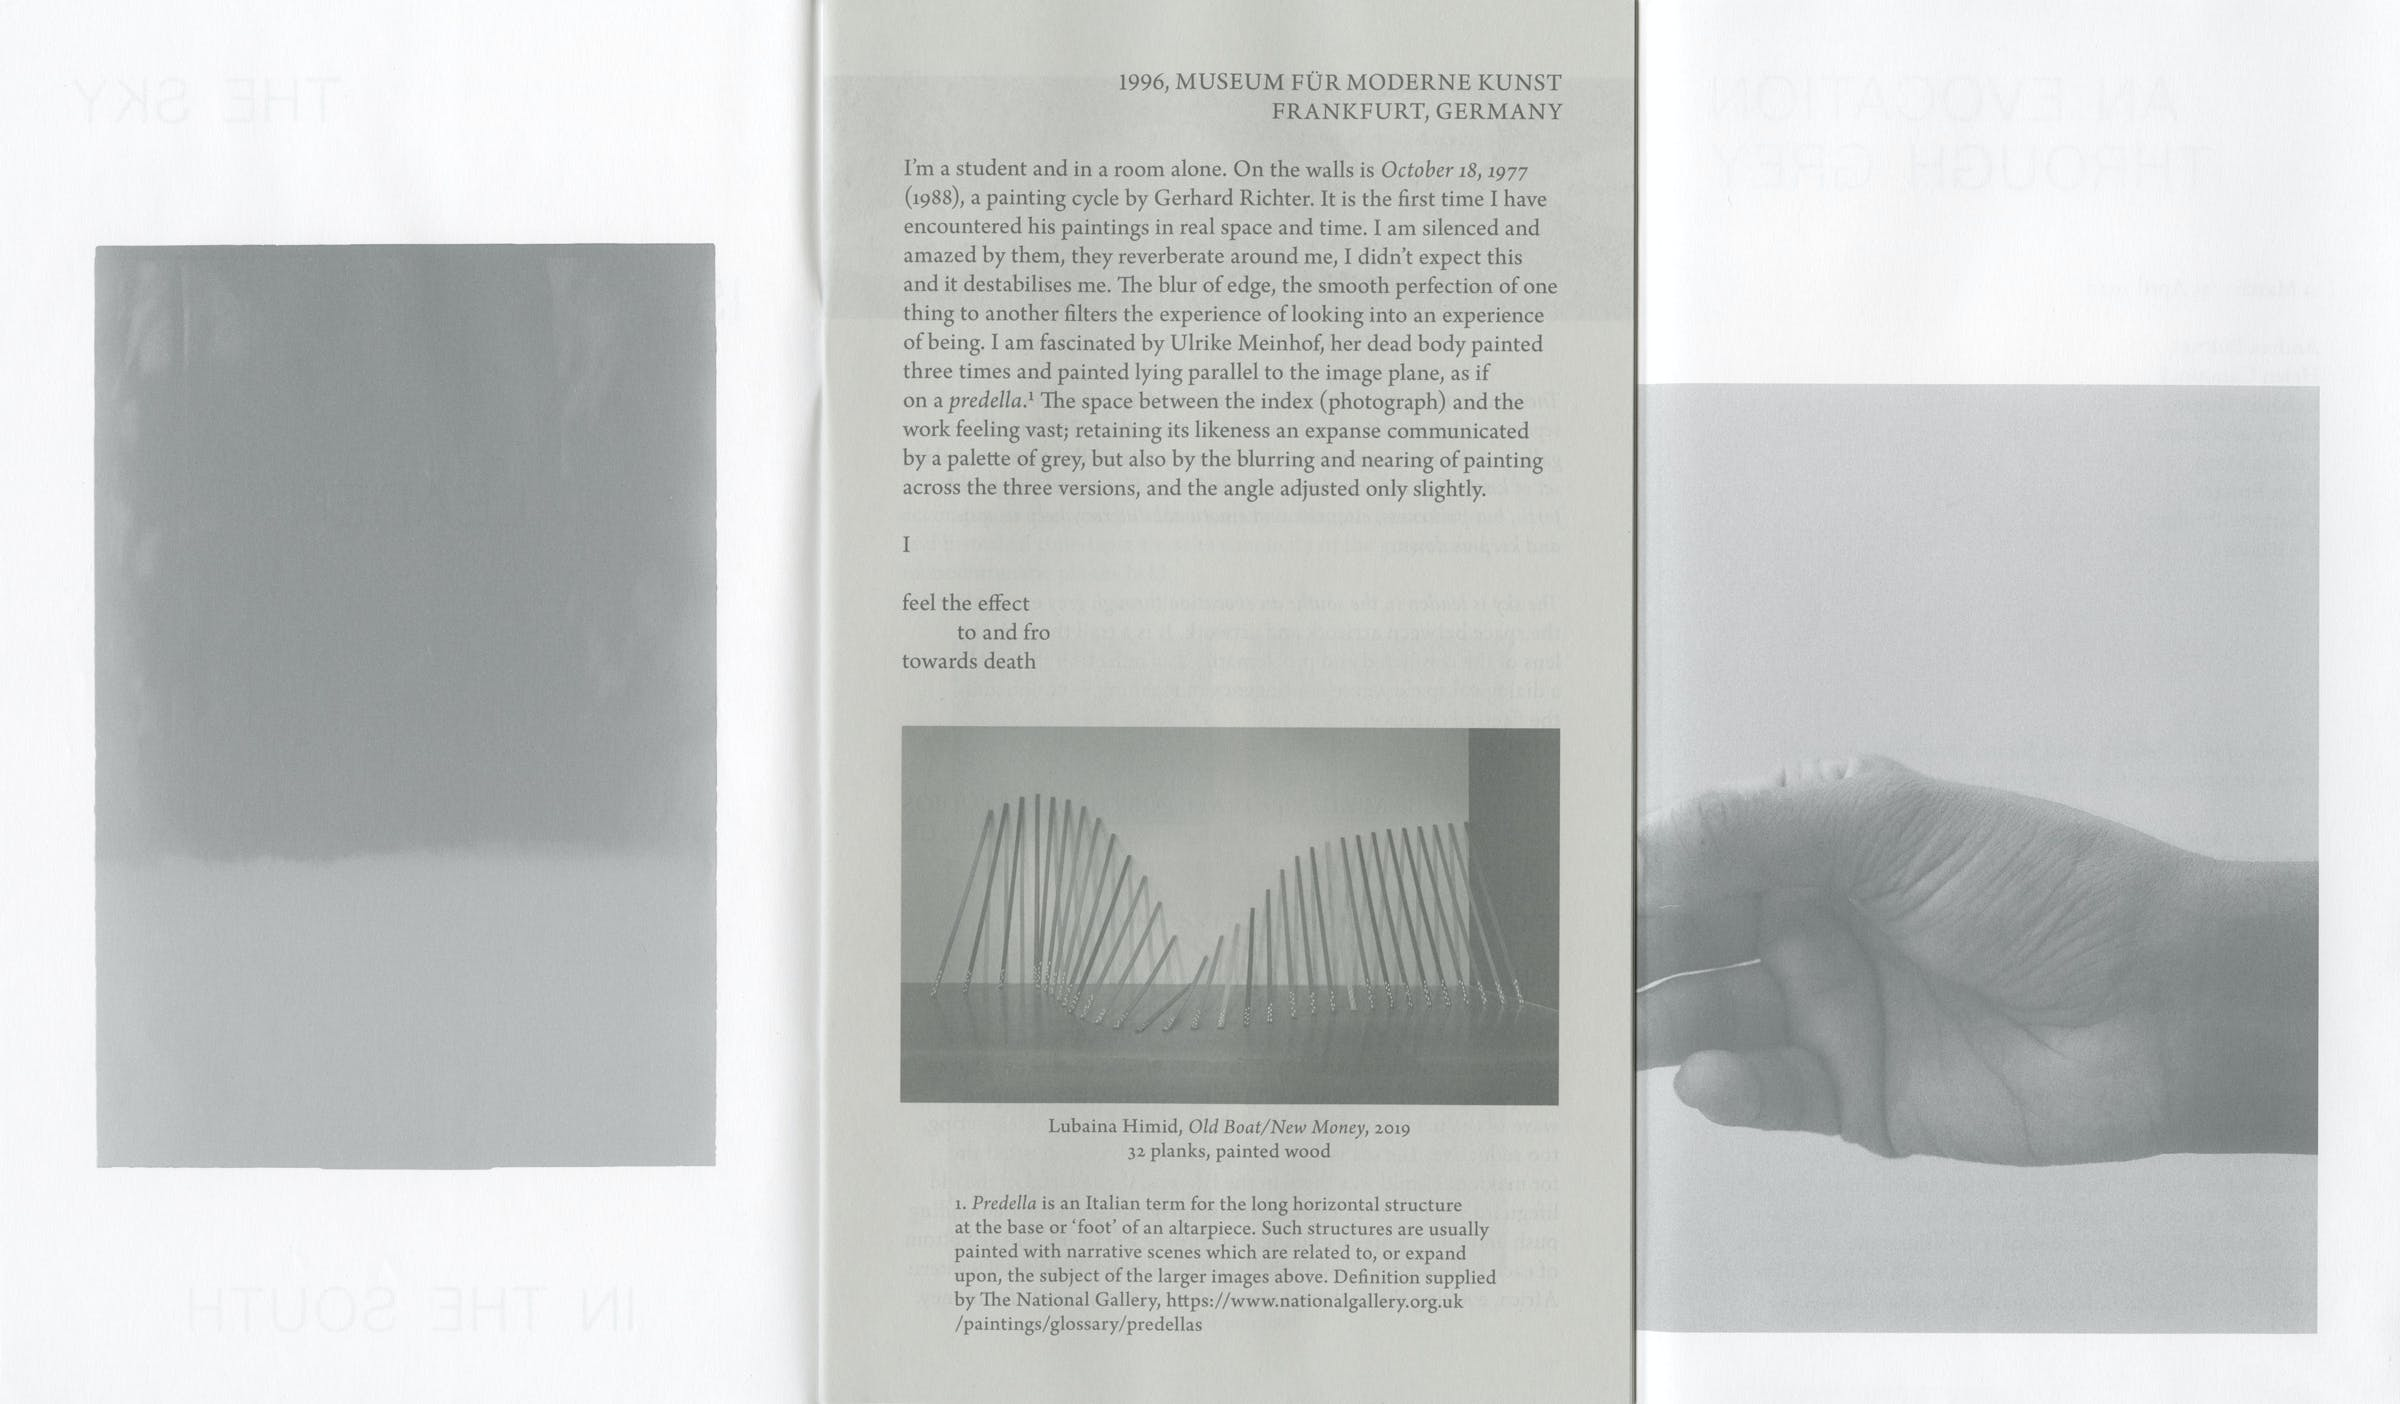 Hollybush Gardens, The Sky is Leaden in the South: An Evocation Through Grey, Print, Graphic Design by Wolfe Hall